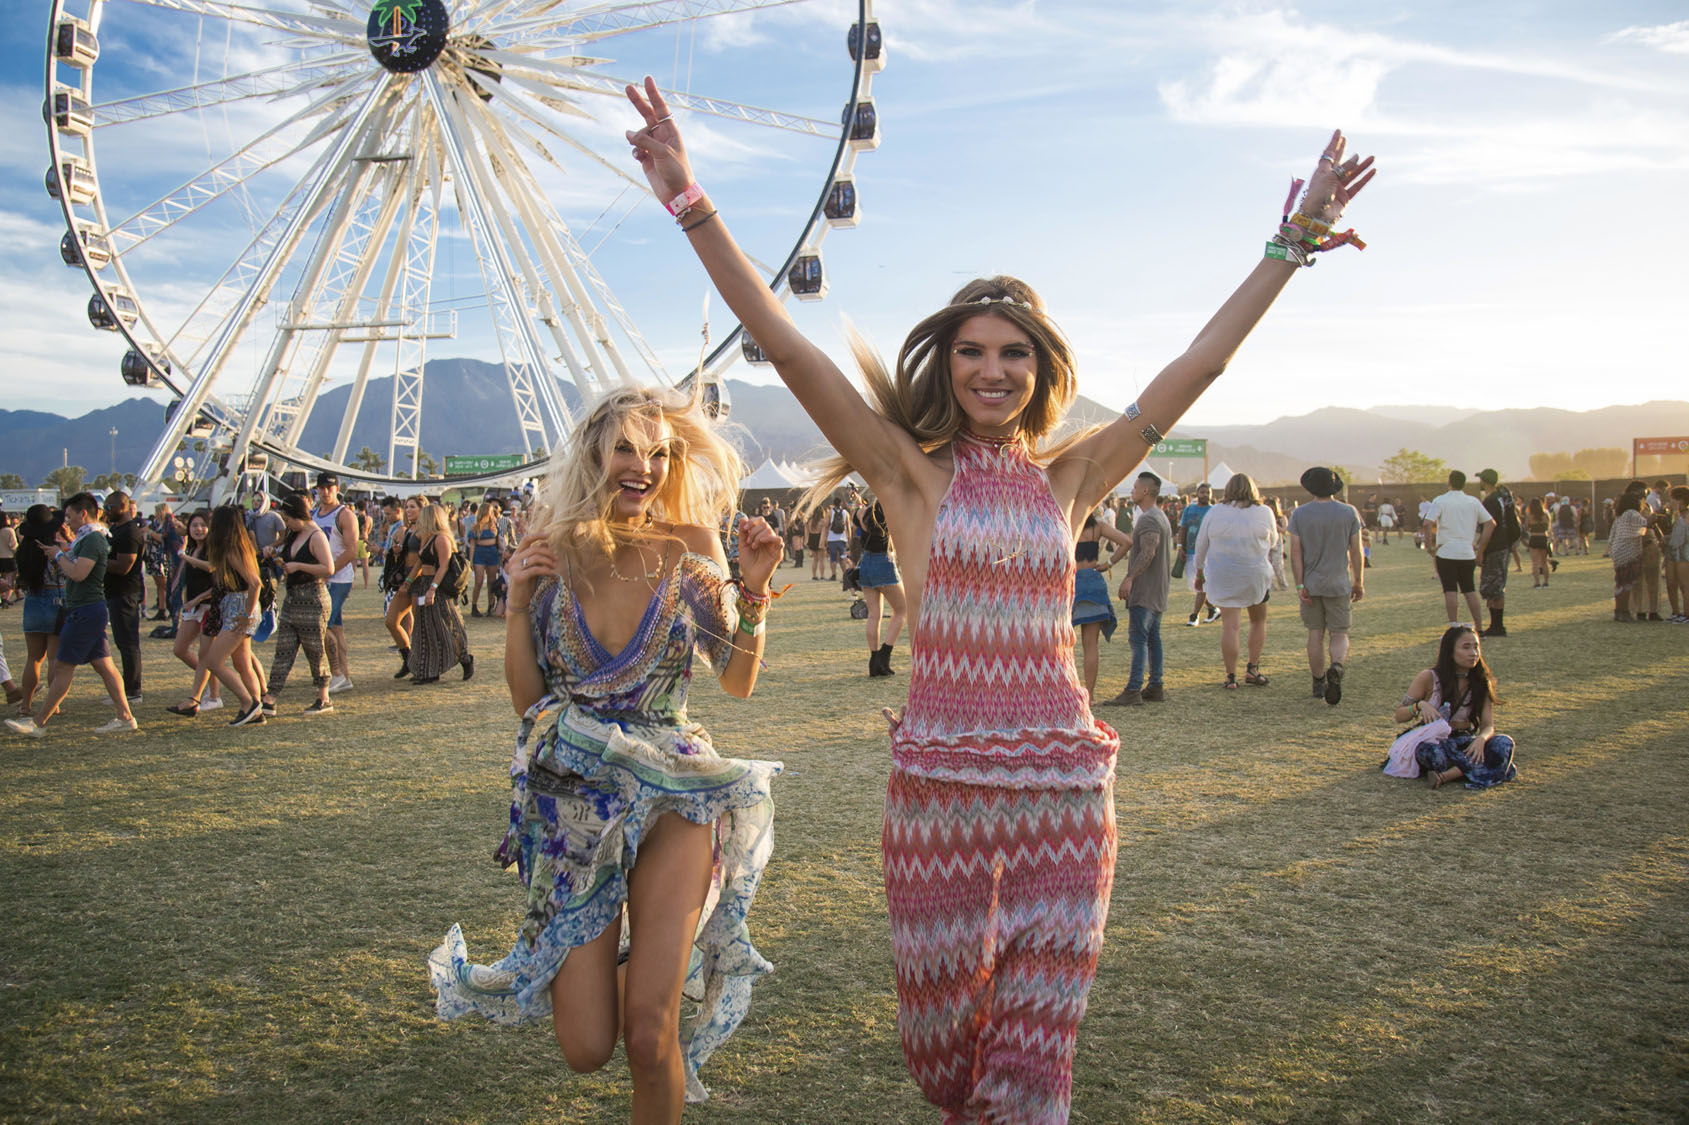 Coachella (ko-CHEL-a, ko-a-CHEL-a) is a city in Riverside County, California; it is the easternmost city in the region collectively known as the Coachella Valley (or the Palm Springs area).